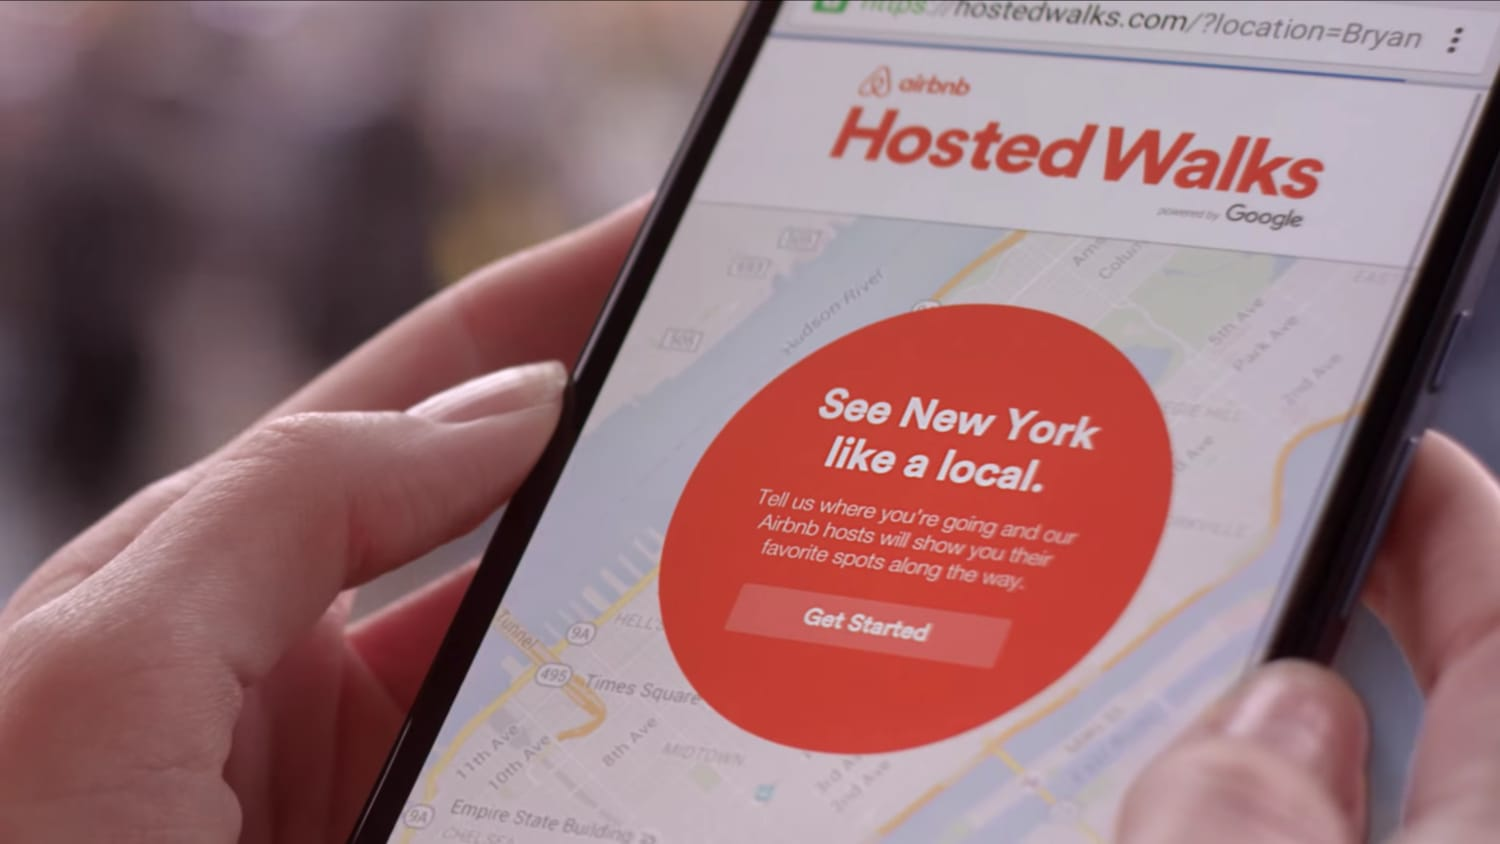 Google & airbnb - Hosted Walks